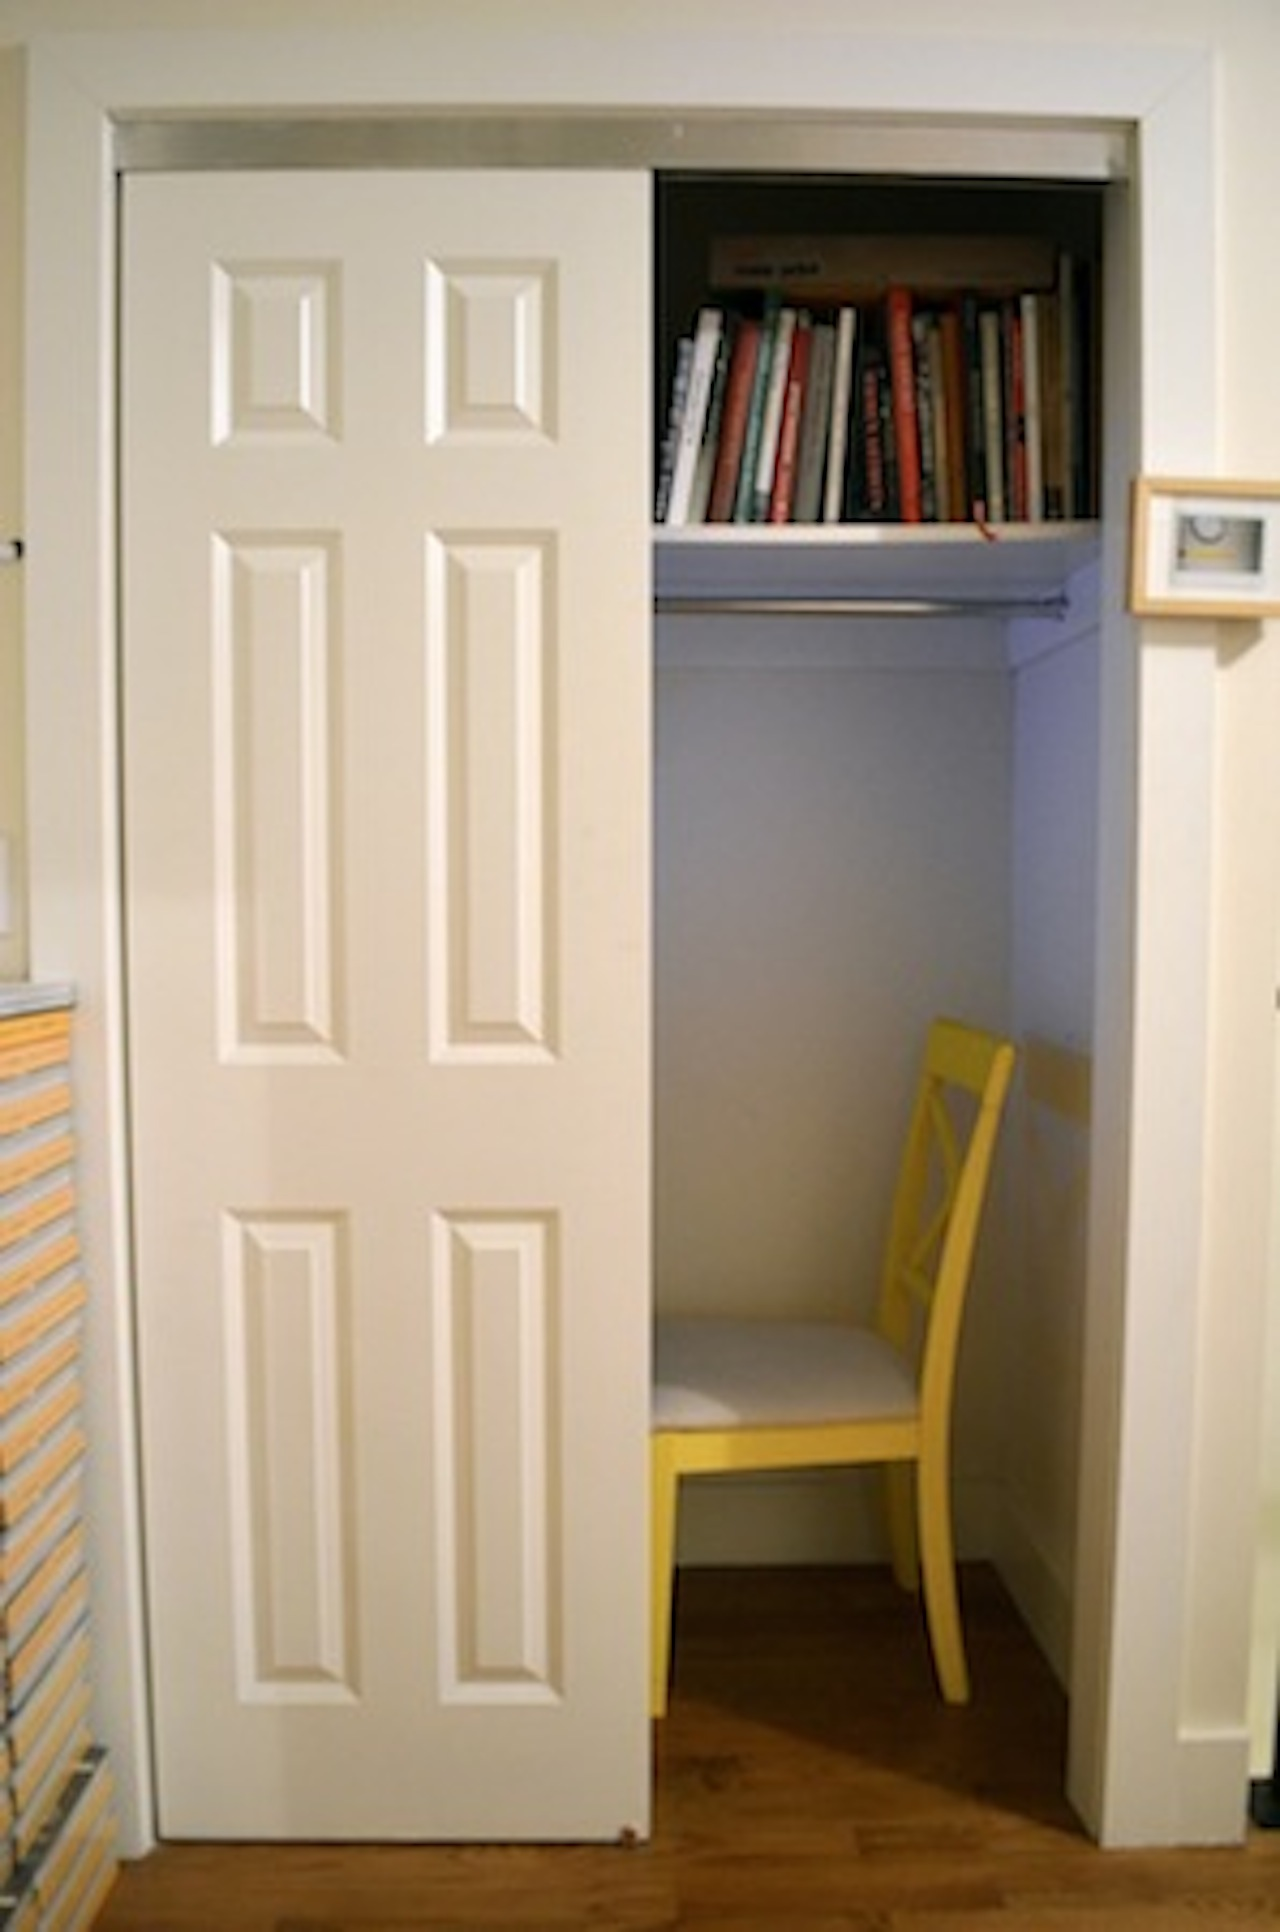 A closet where one person at a time can watch films (Photo by Emily Wilson)